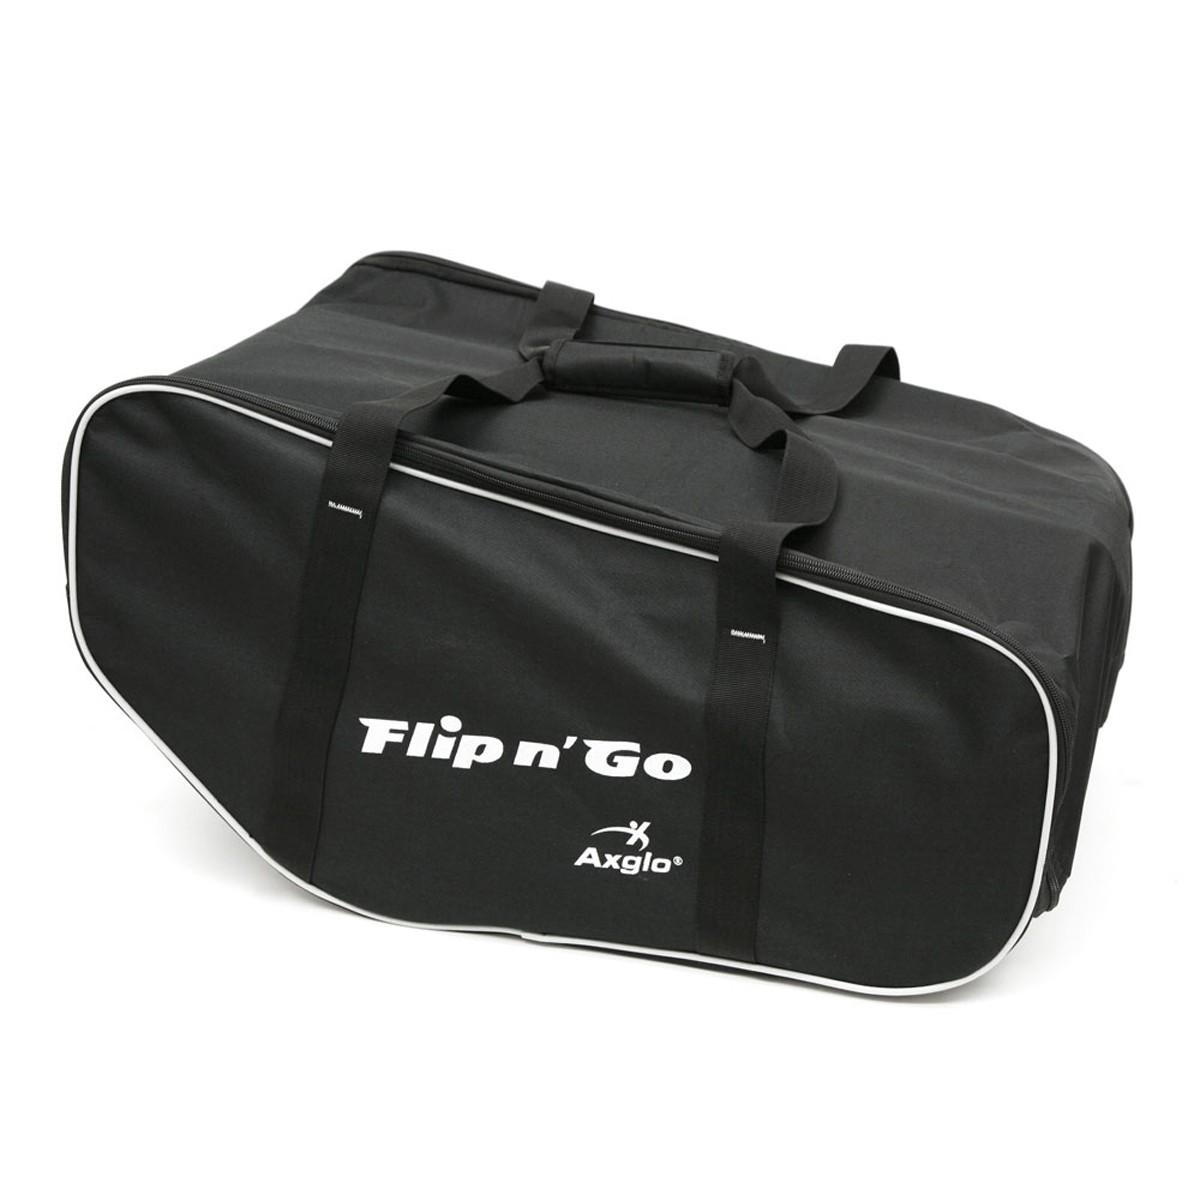 Axglo Flip N' Go Carry Bag